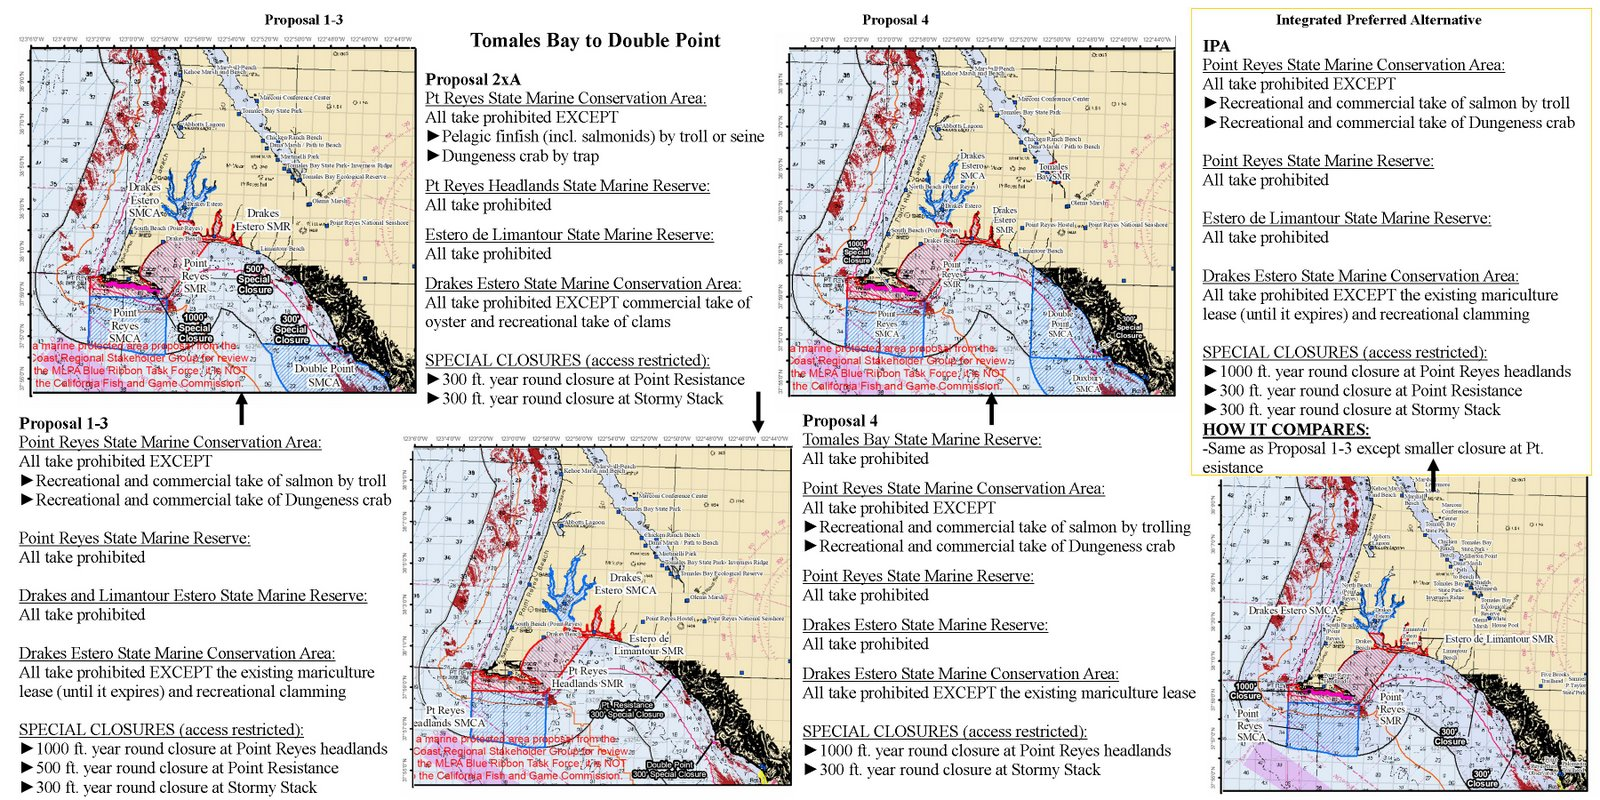 Tomales Bay to Double Point